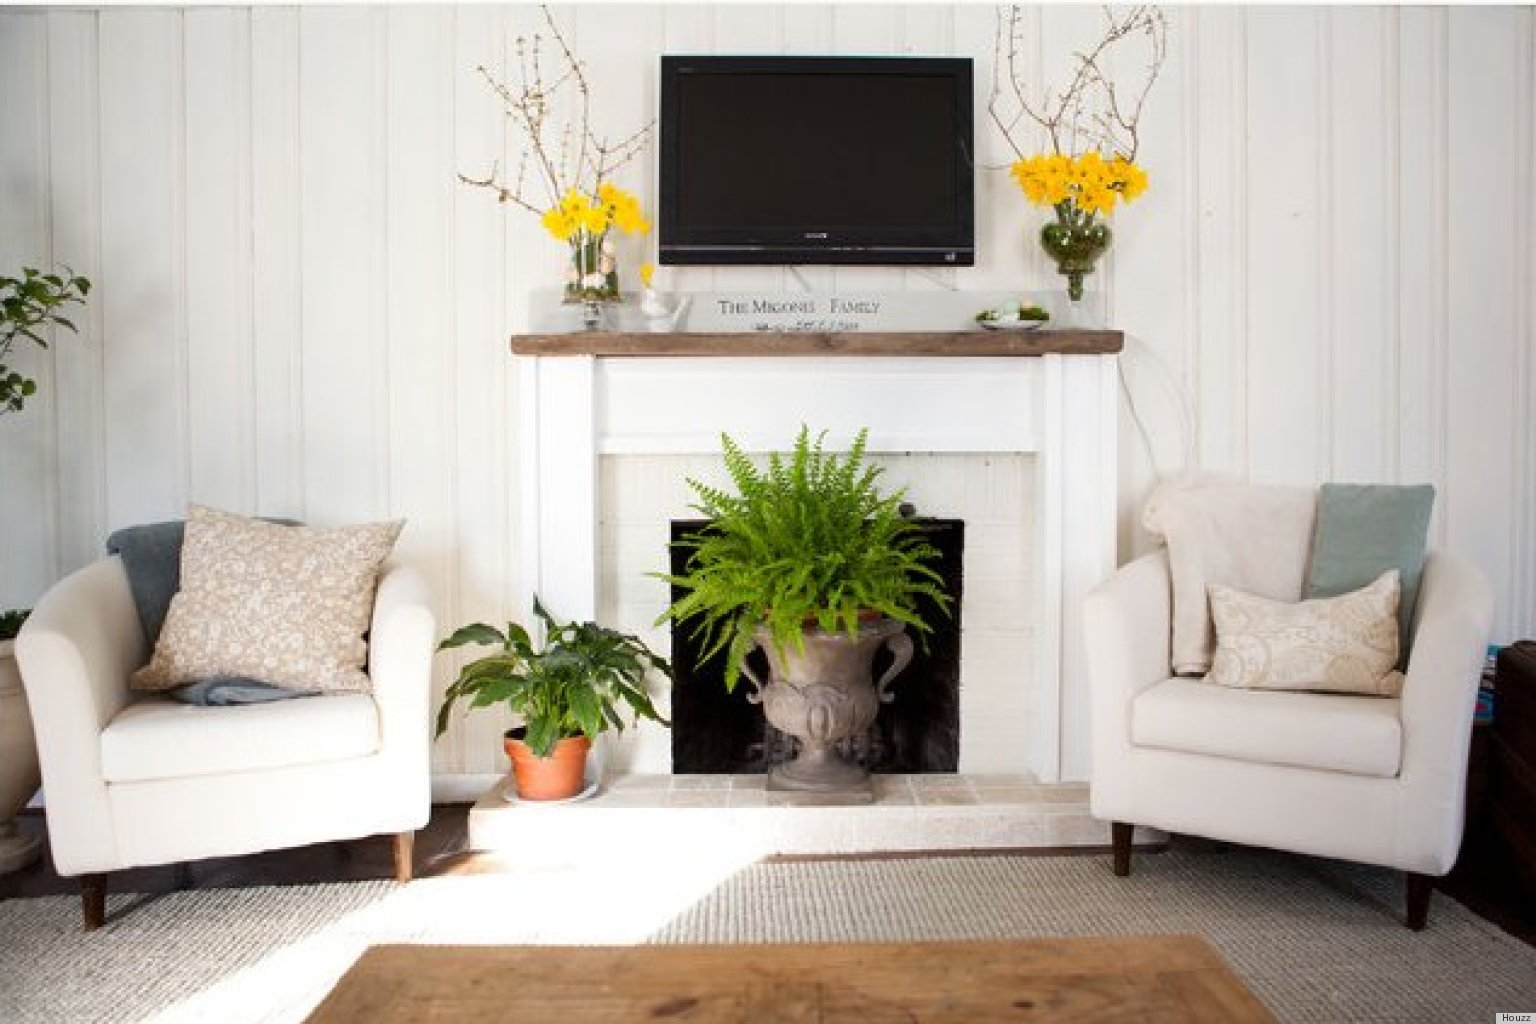 10 Ways To Decorate Your Fireplace In The Summer, Since You Wonu0027t Need It  Anyway (PHOTOS) | HuffPost Pictures